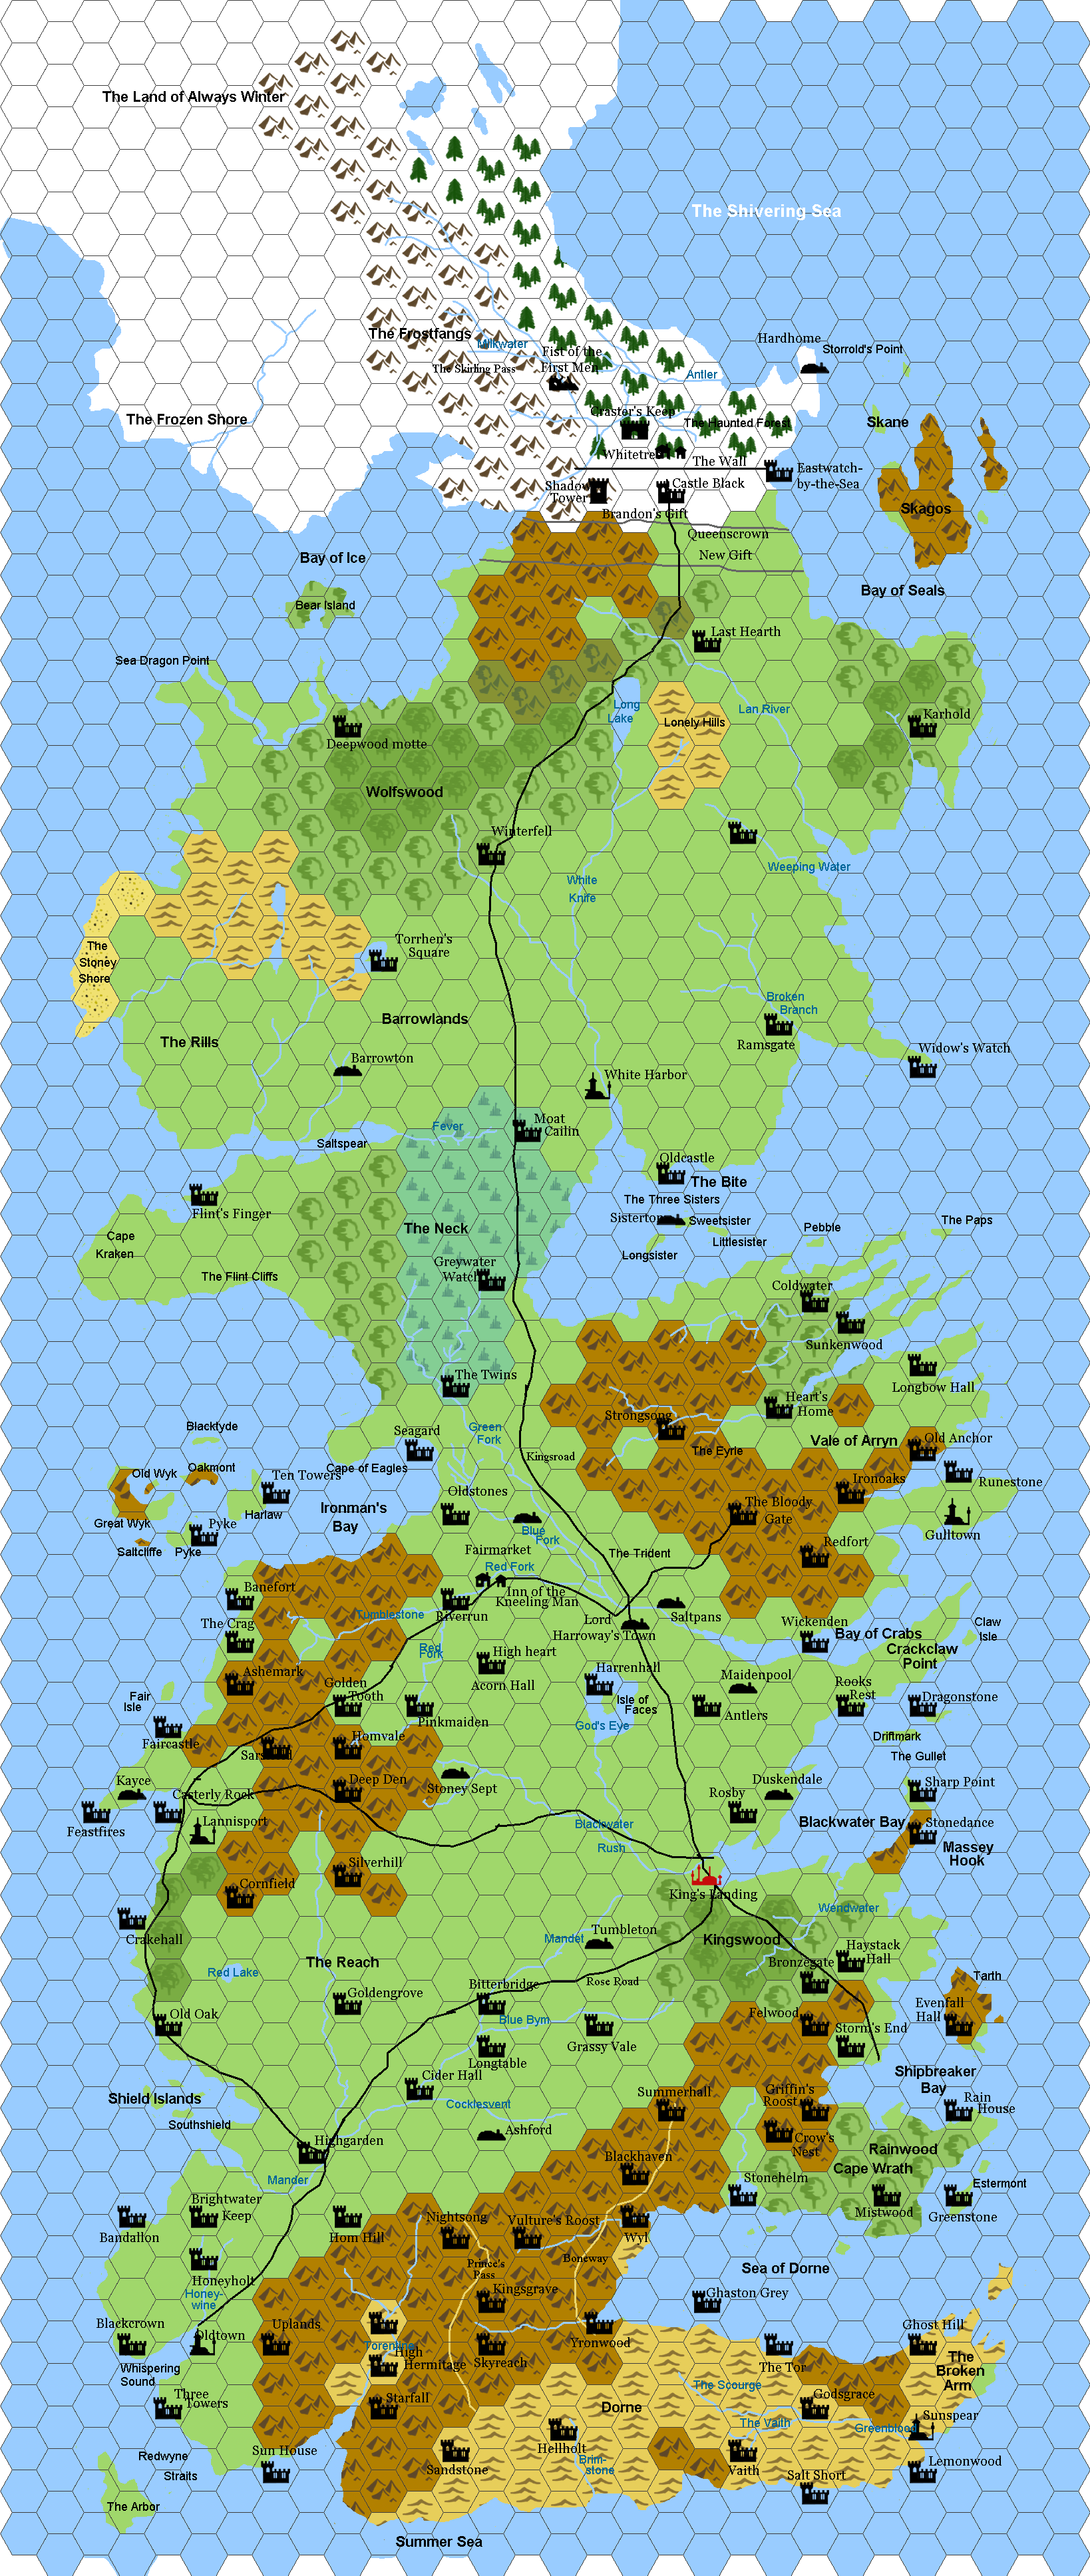 Hexographer rpg mapping dream campaign mastery westeros from song of fire and ice done in hexographer gumiabroncs Choice Image